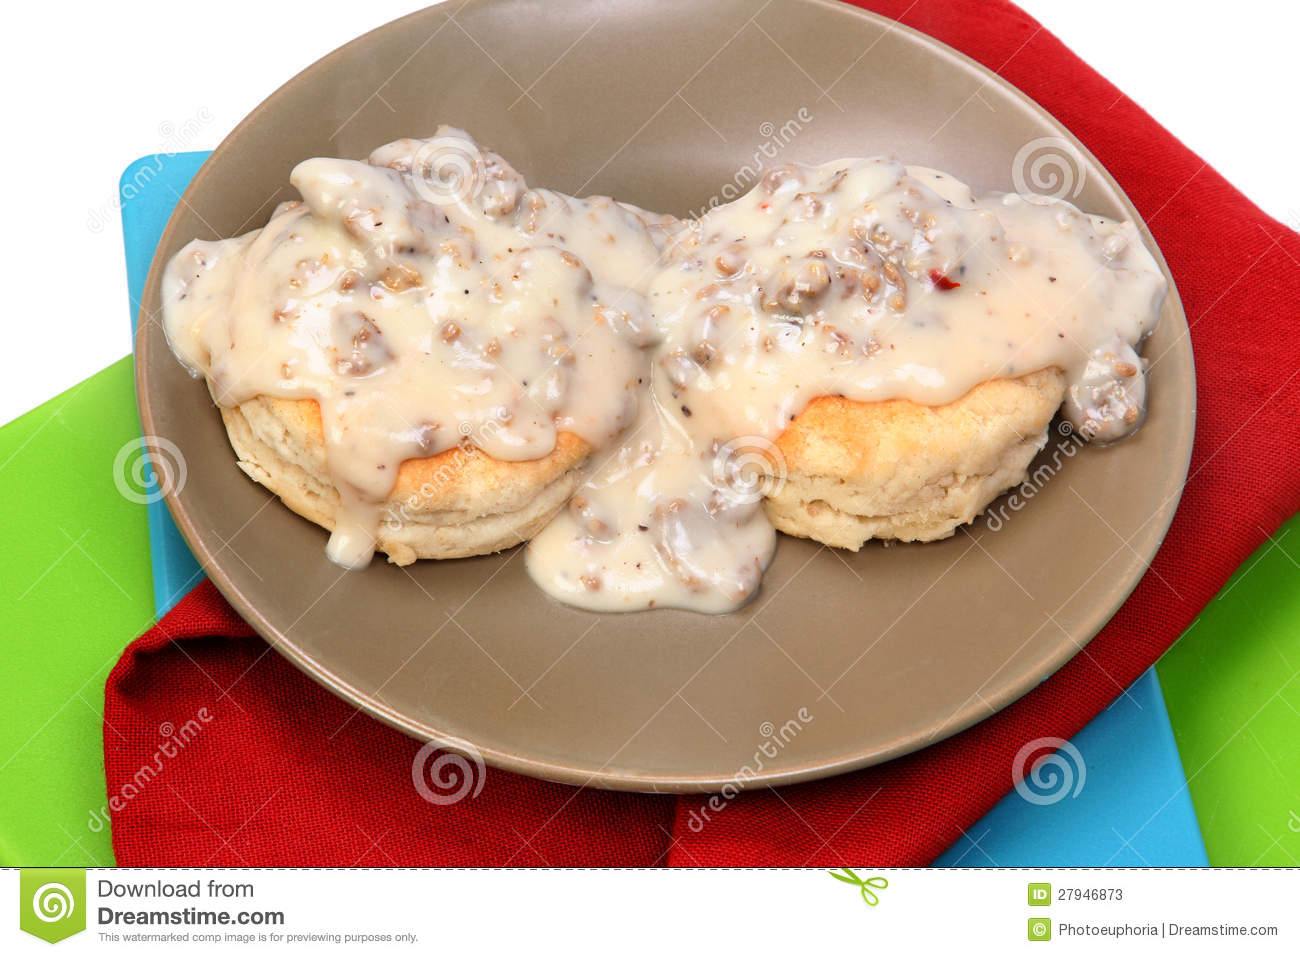 And Cartoon Sausage Biscuits